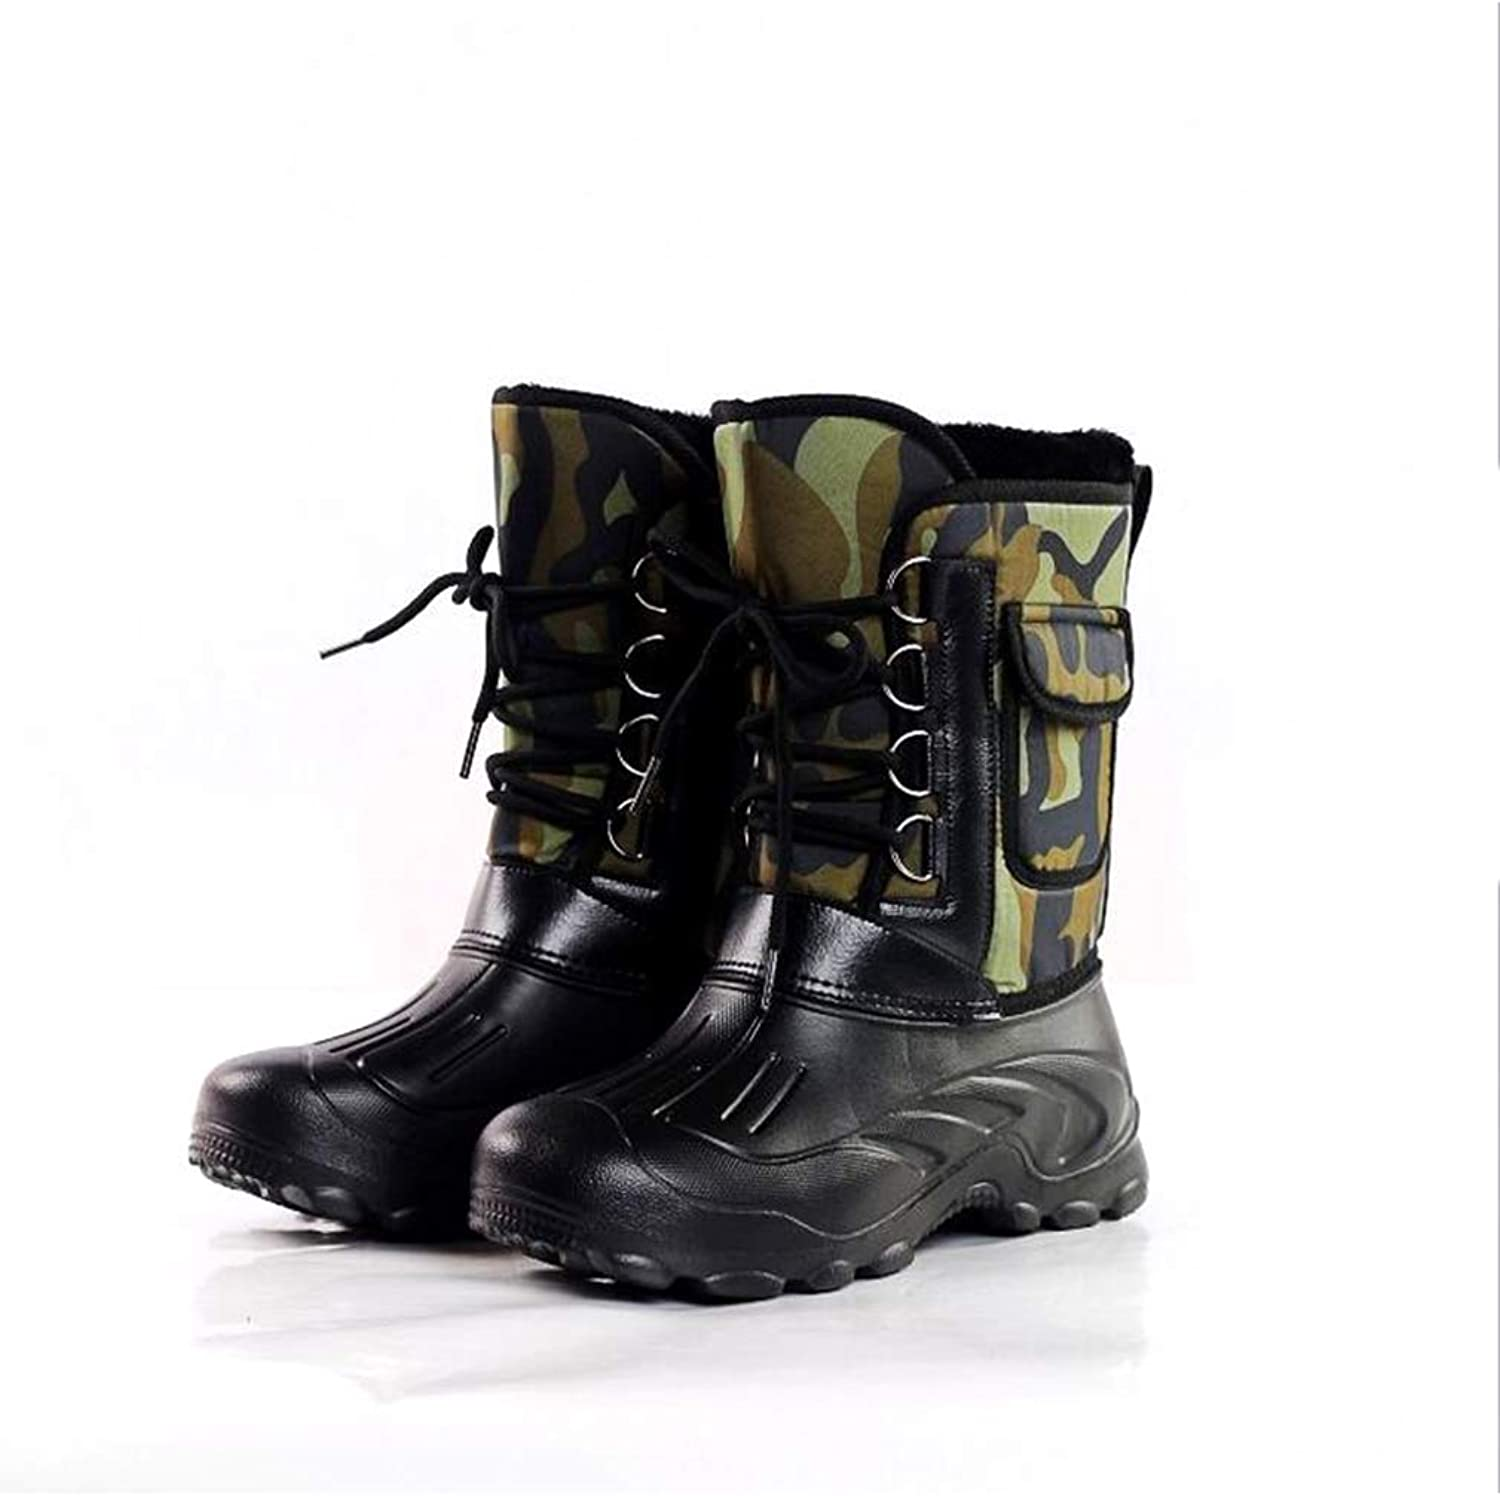 Y-H Men's Boots, Outdoor Winter Waterproof Snow Boots Boots Skiing shoes Fishing shoes Combat Boots (color   D, Size   43)